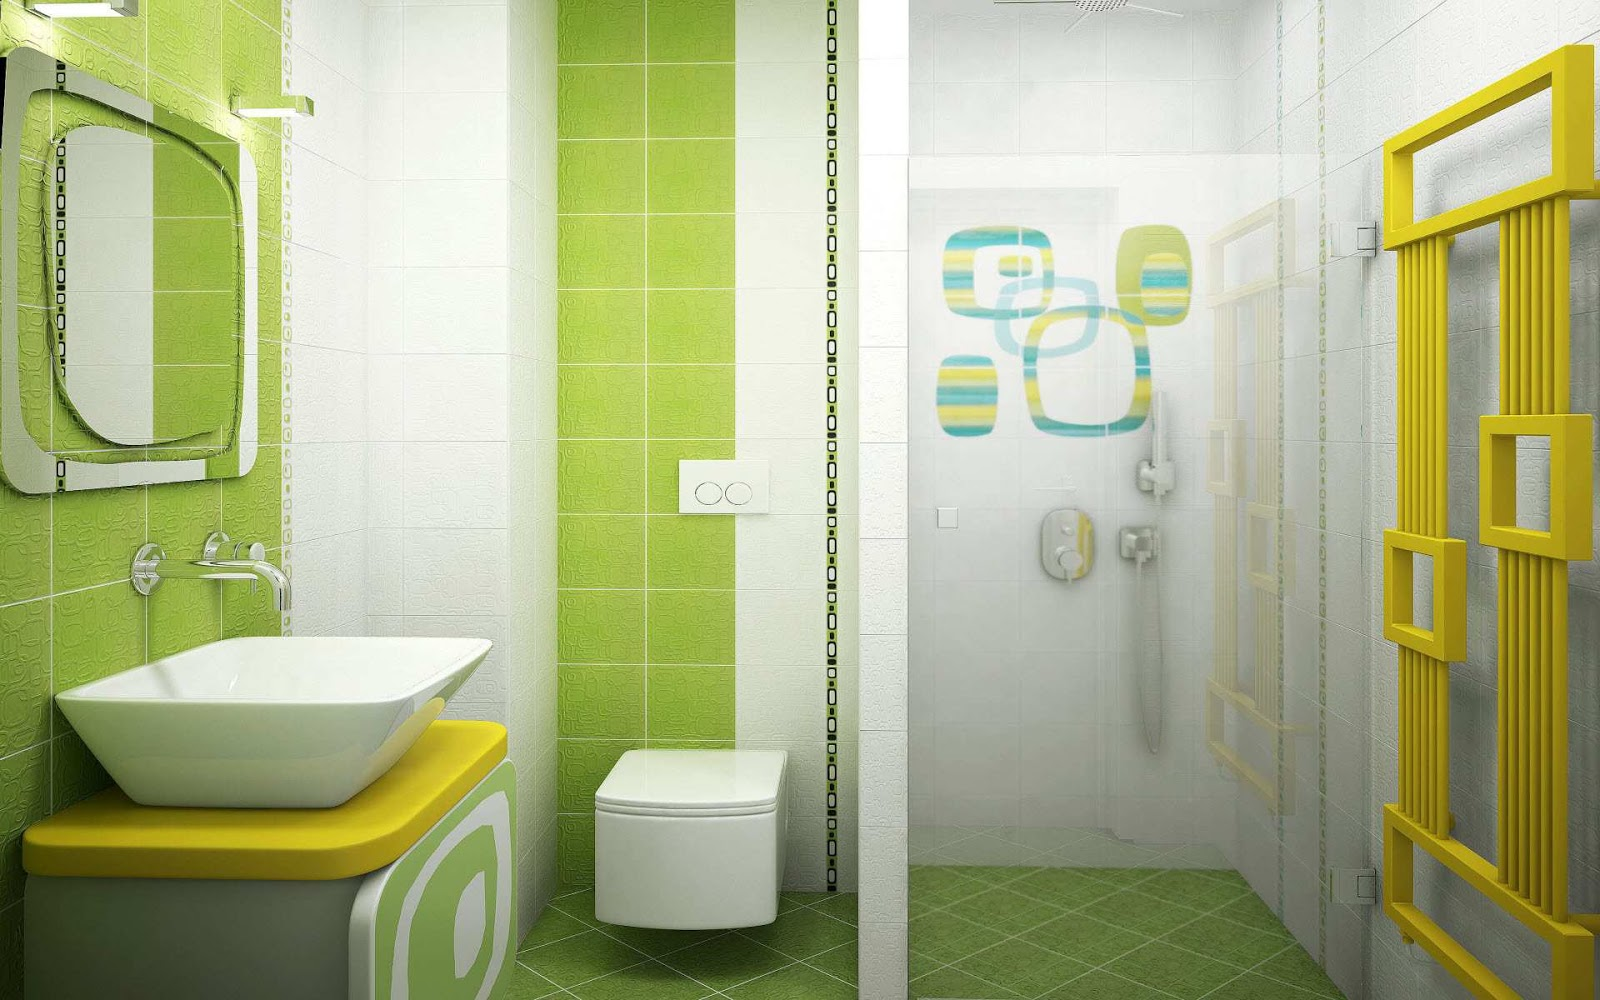 Bathroom with vanity bidet and toilet bathroom style bathroom tiles - Small Bathroom Tiles Design In Pakistan Rukinet Com Small Bathroom Tiles Design In Pakistan Bathroom Styles